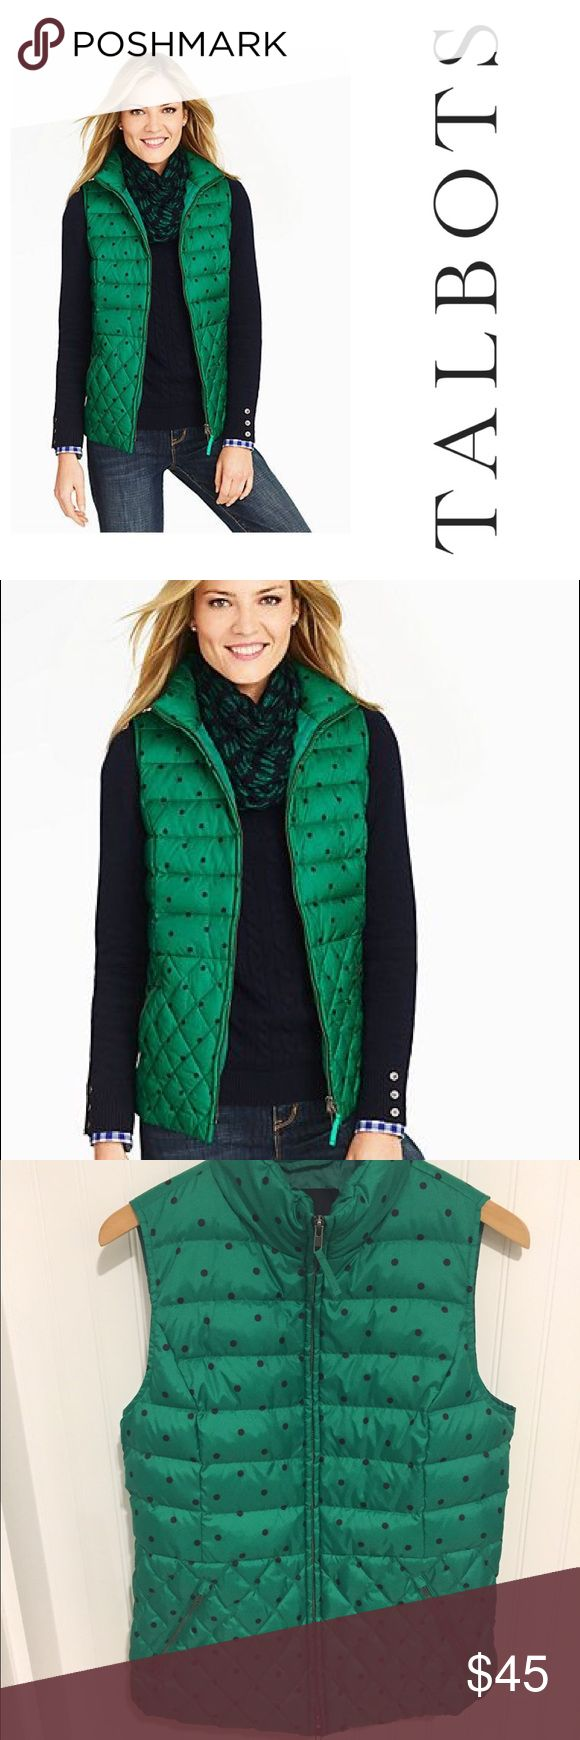 Talbots green navy polka dot zip up Vest M Size medium. Worn once. In excellent condition. Talbots Tops